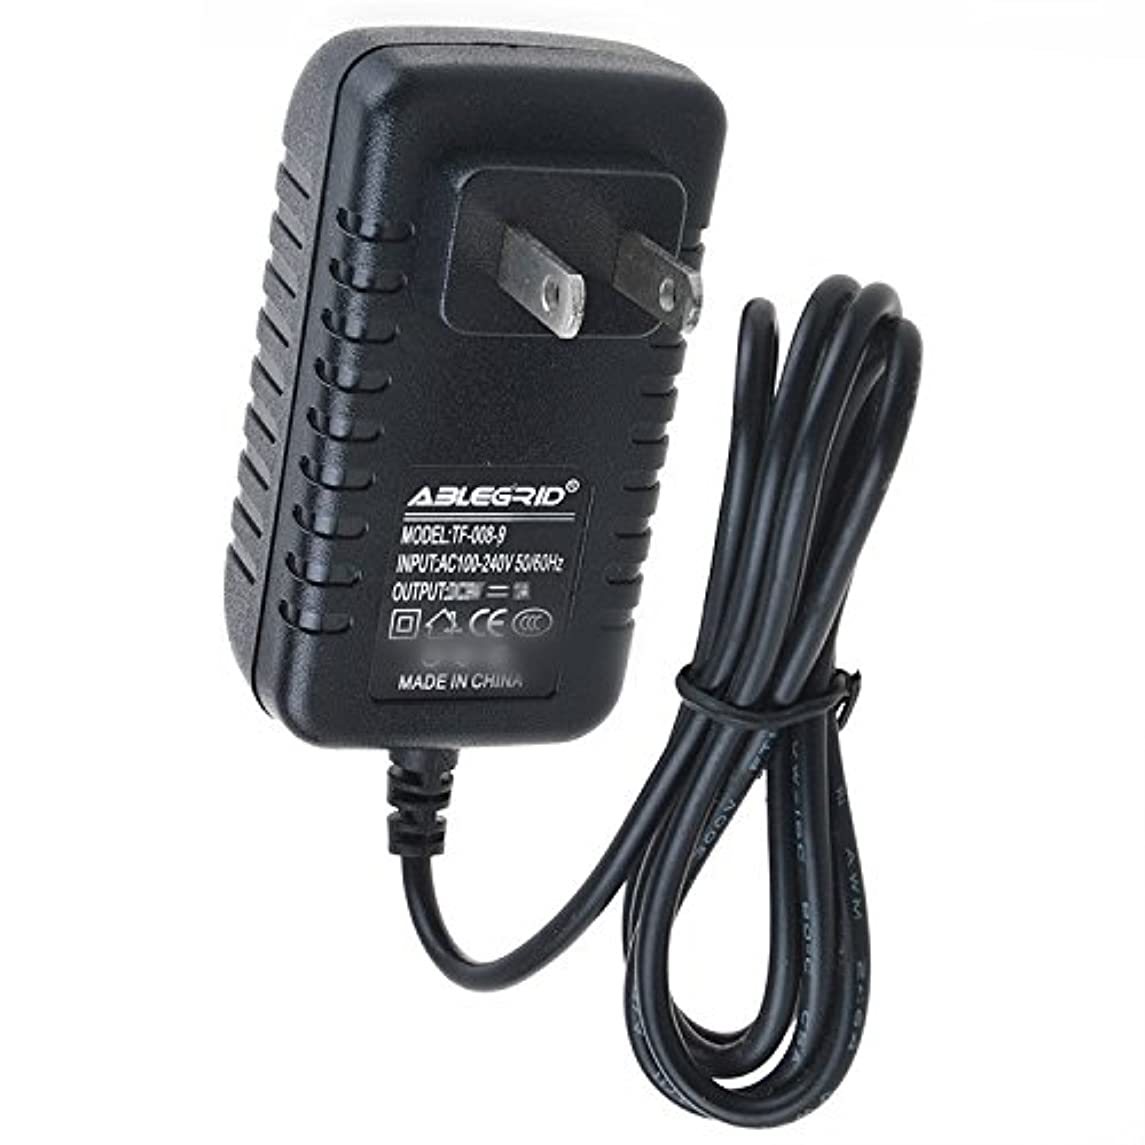 ABLEGRID AC/DC Adapter for PRO Form XP400R XP 400 R XP400 R Recumbent Exercise Bike 831.21752.0 831.217520 831217520 6V Power Supply Cord Cable PS Charger Mains PSU